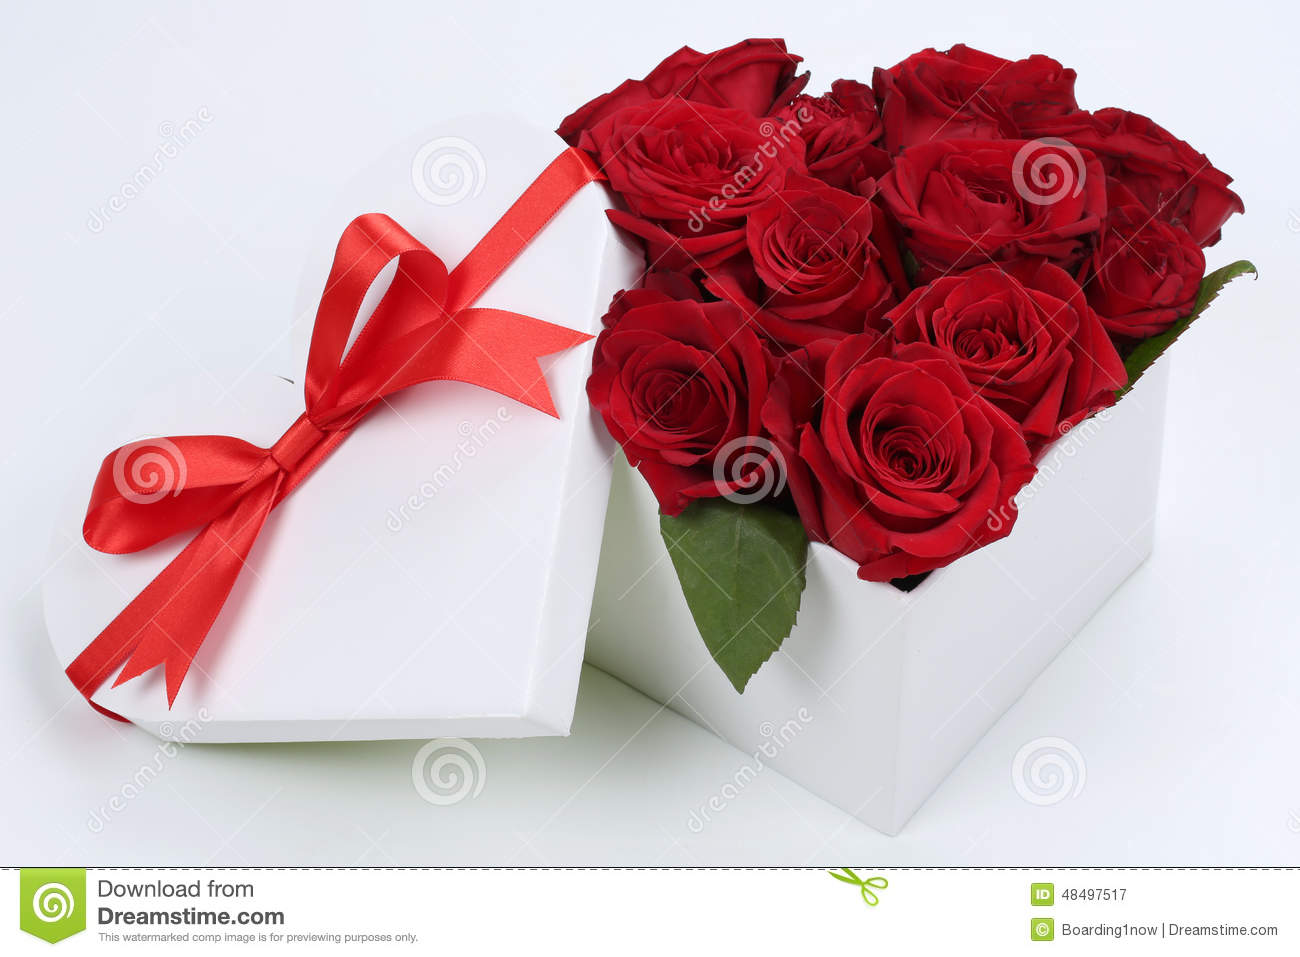 Gift Box With Roses For Birthday Gifts, Valentine's Or Mother's ...